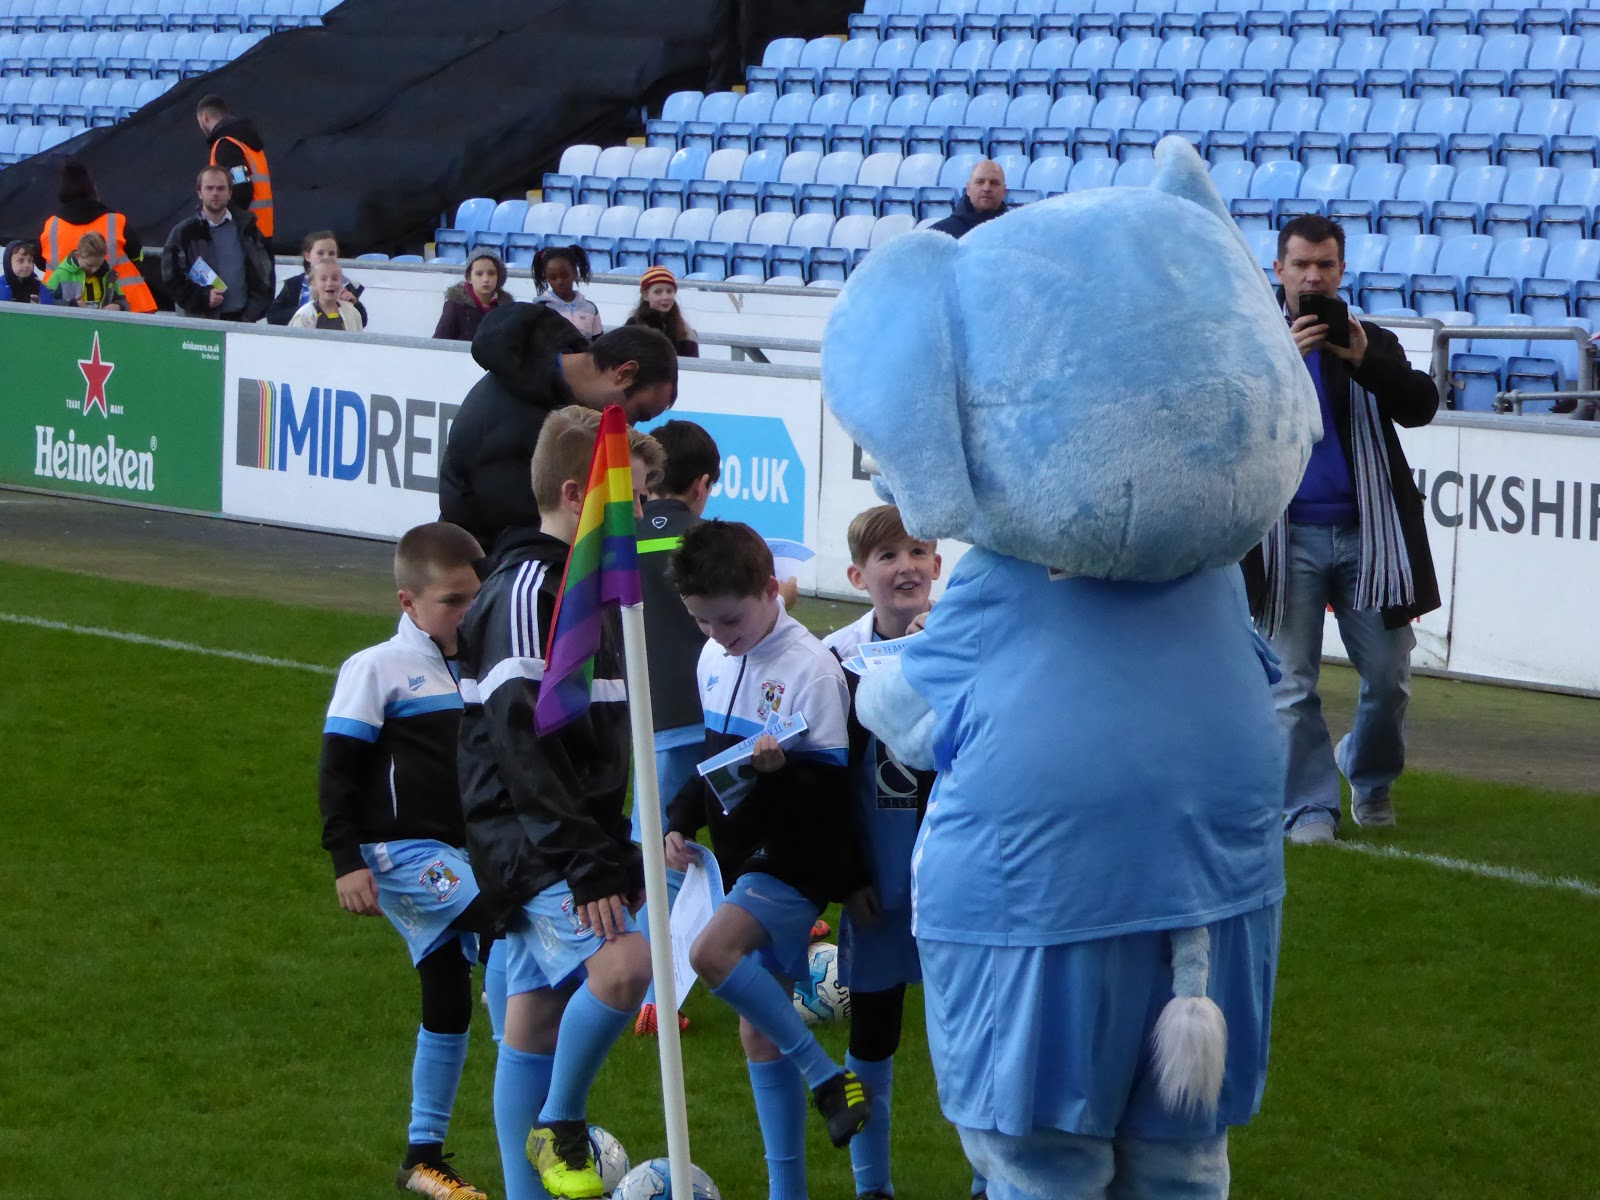 Coventry city fc photos Cached